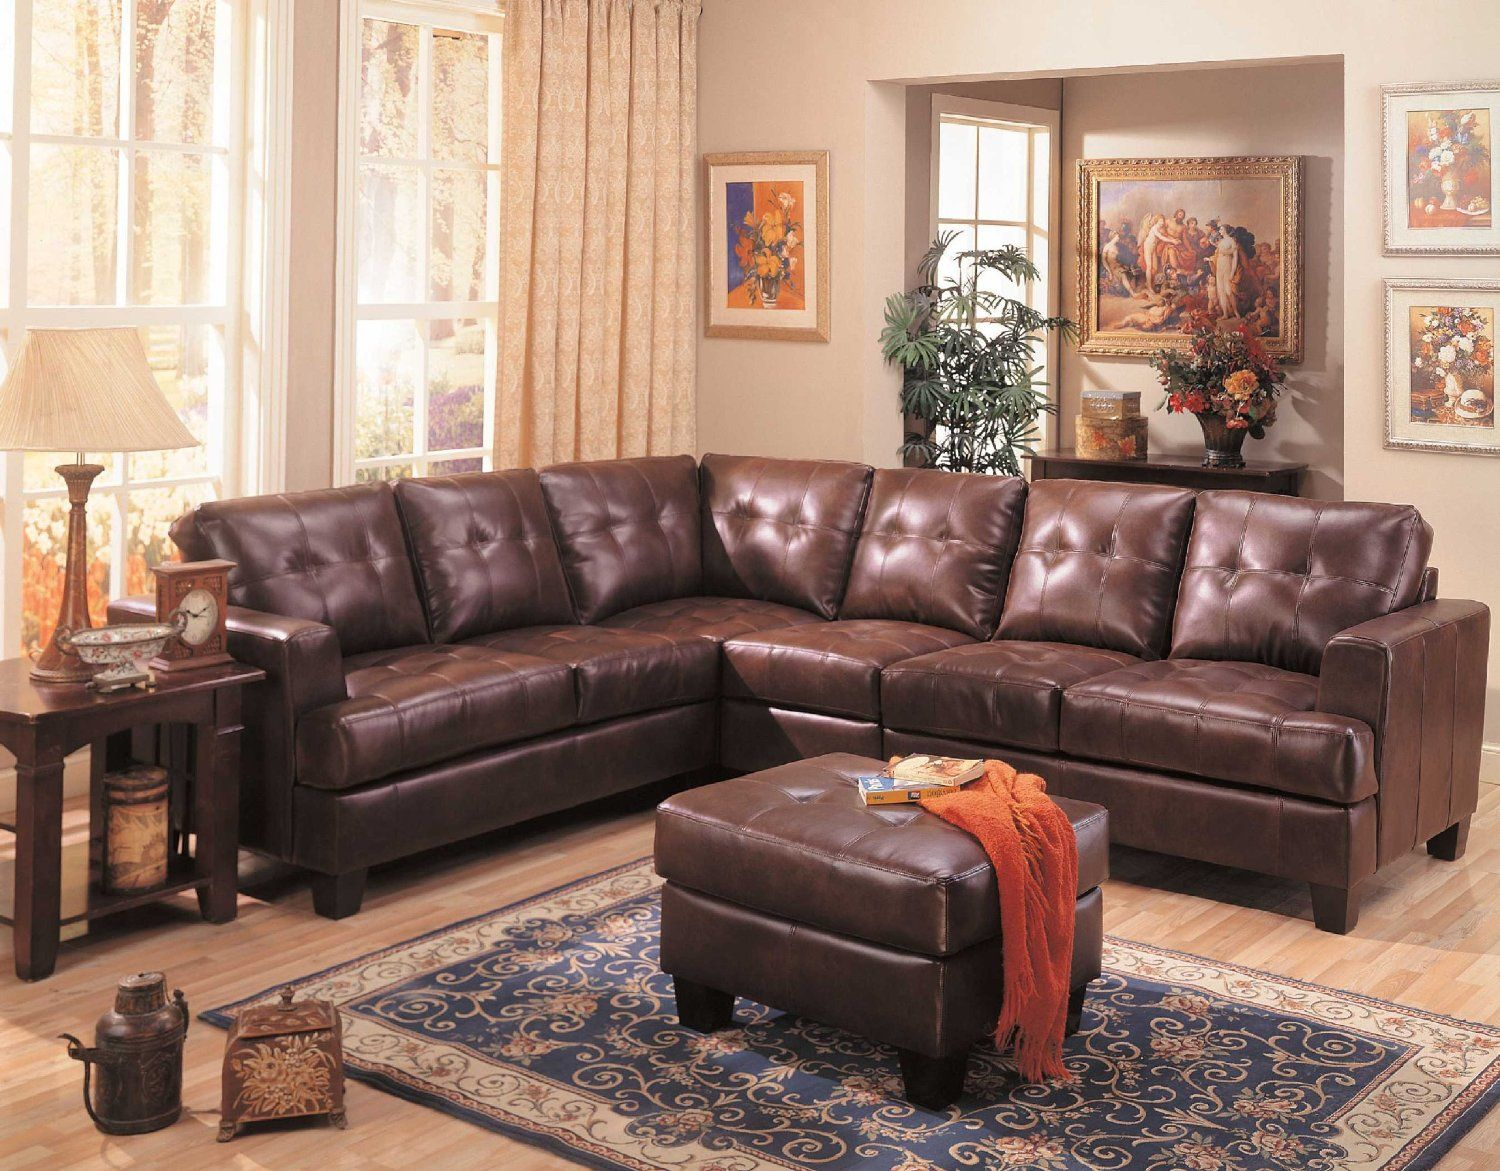 This Stunning Sectional Sofa Features Clean Lines And Attached Cushions Offering 100 Bonded Leather Piece Of Furniture Will Be The Excellent Choice